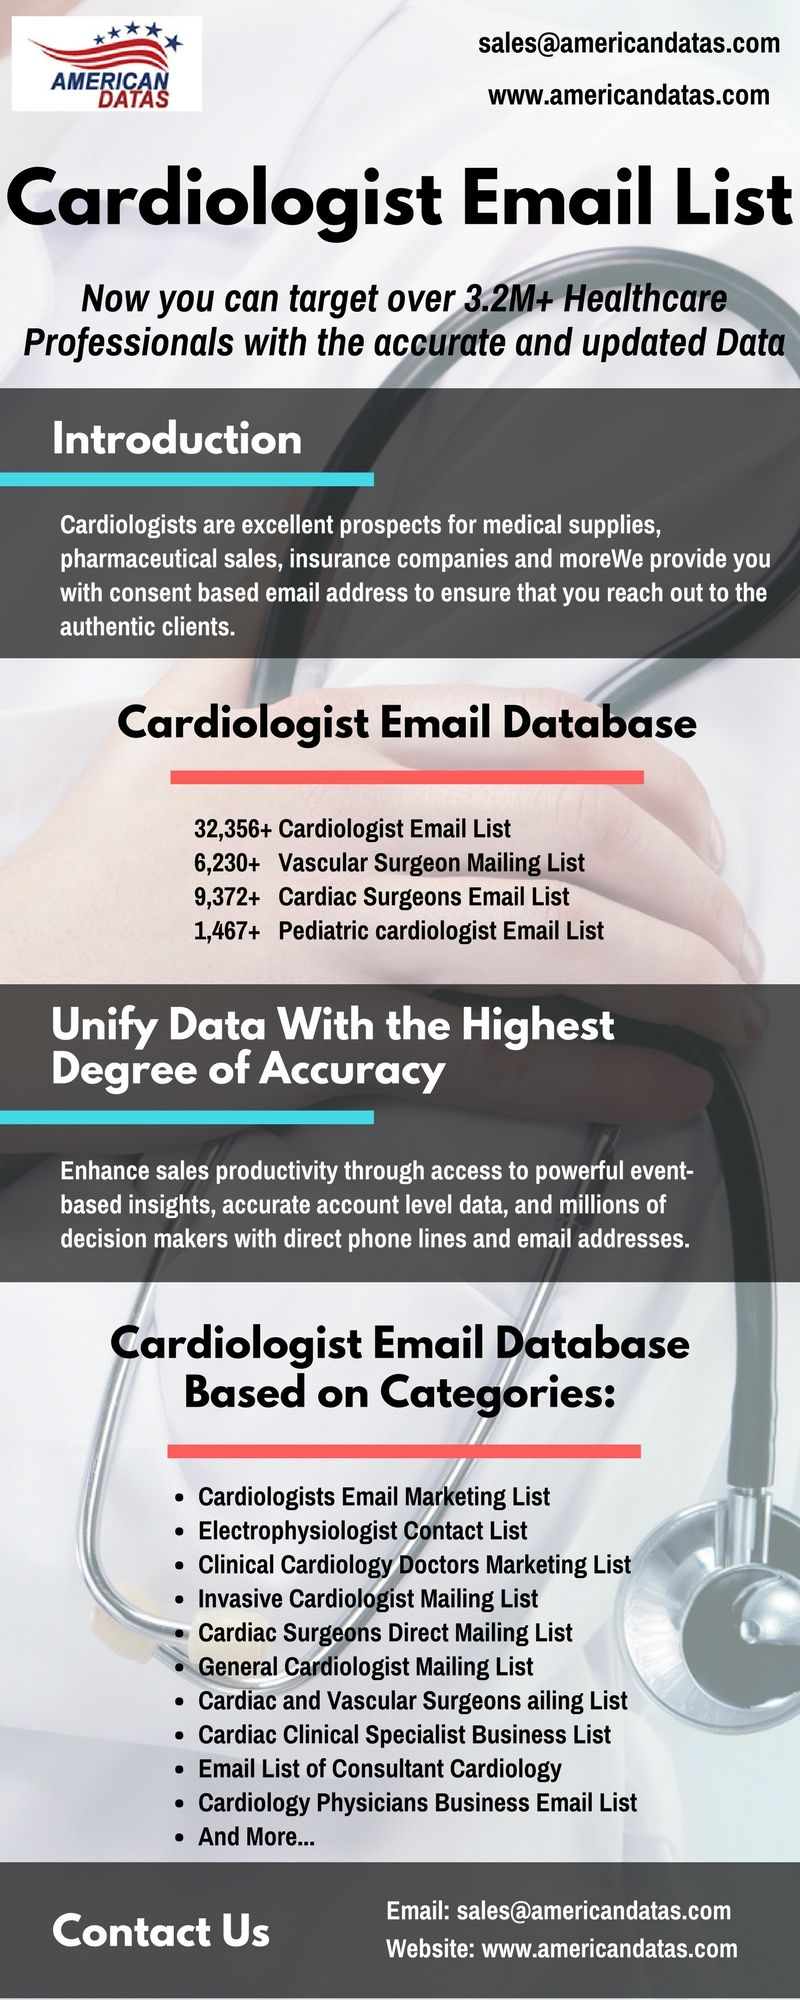 Cardiologists Are Excellent Prospects For Medical Supplies